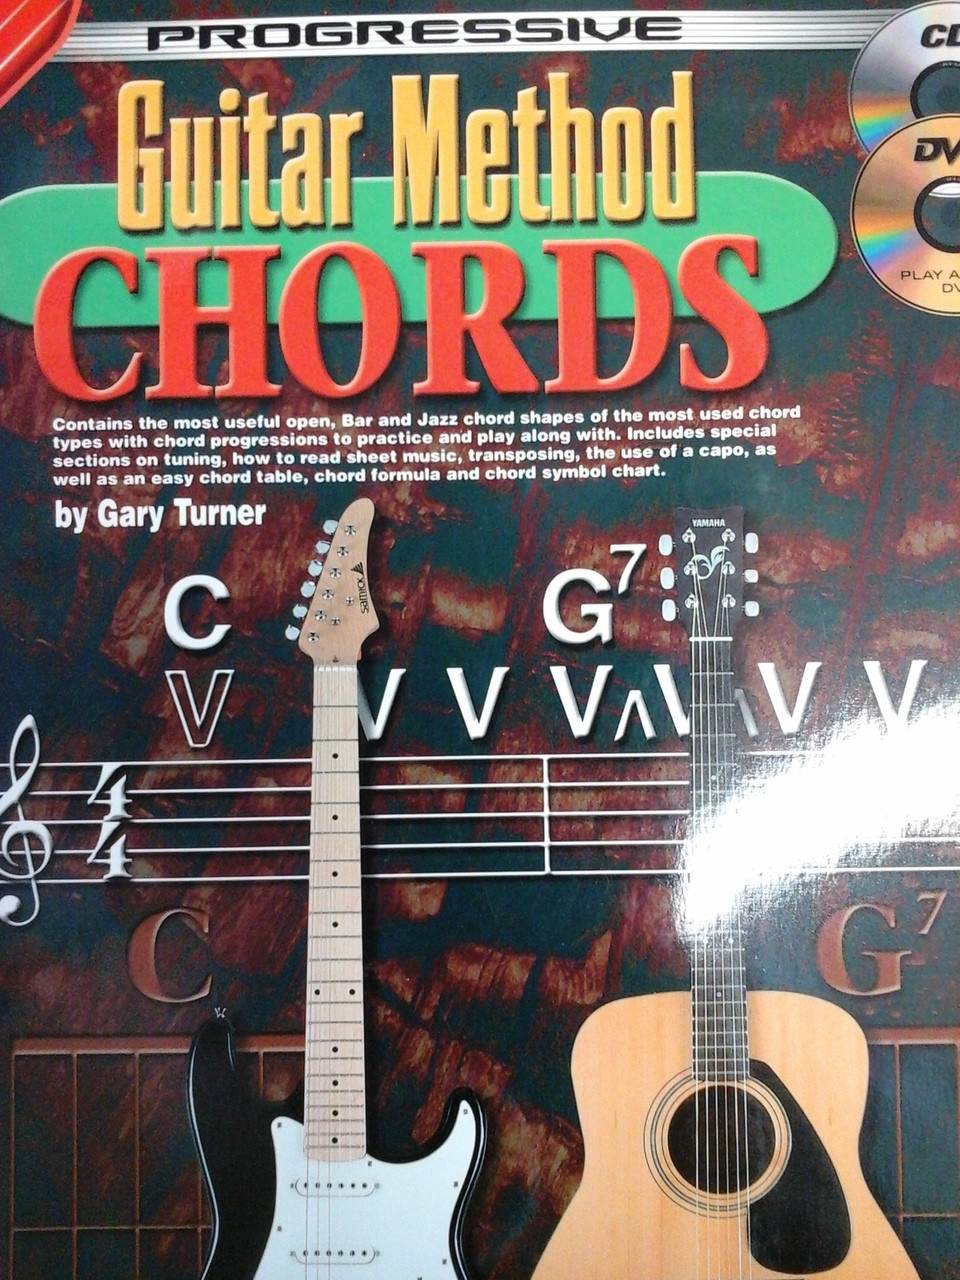 Progressive Guitar Method Chords With Cd Dvd By Gary Turner30 Off String How To Read Basic Chord Diagram Image 1